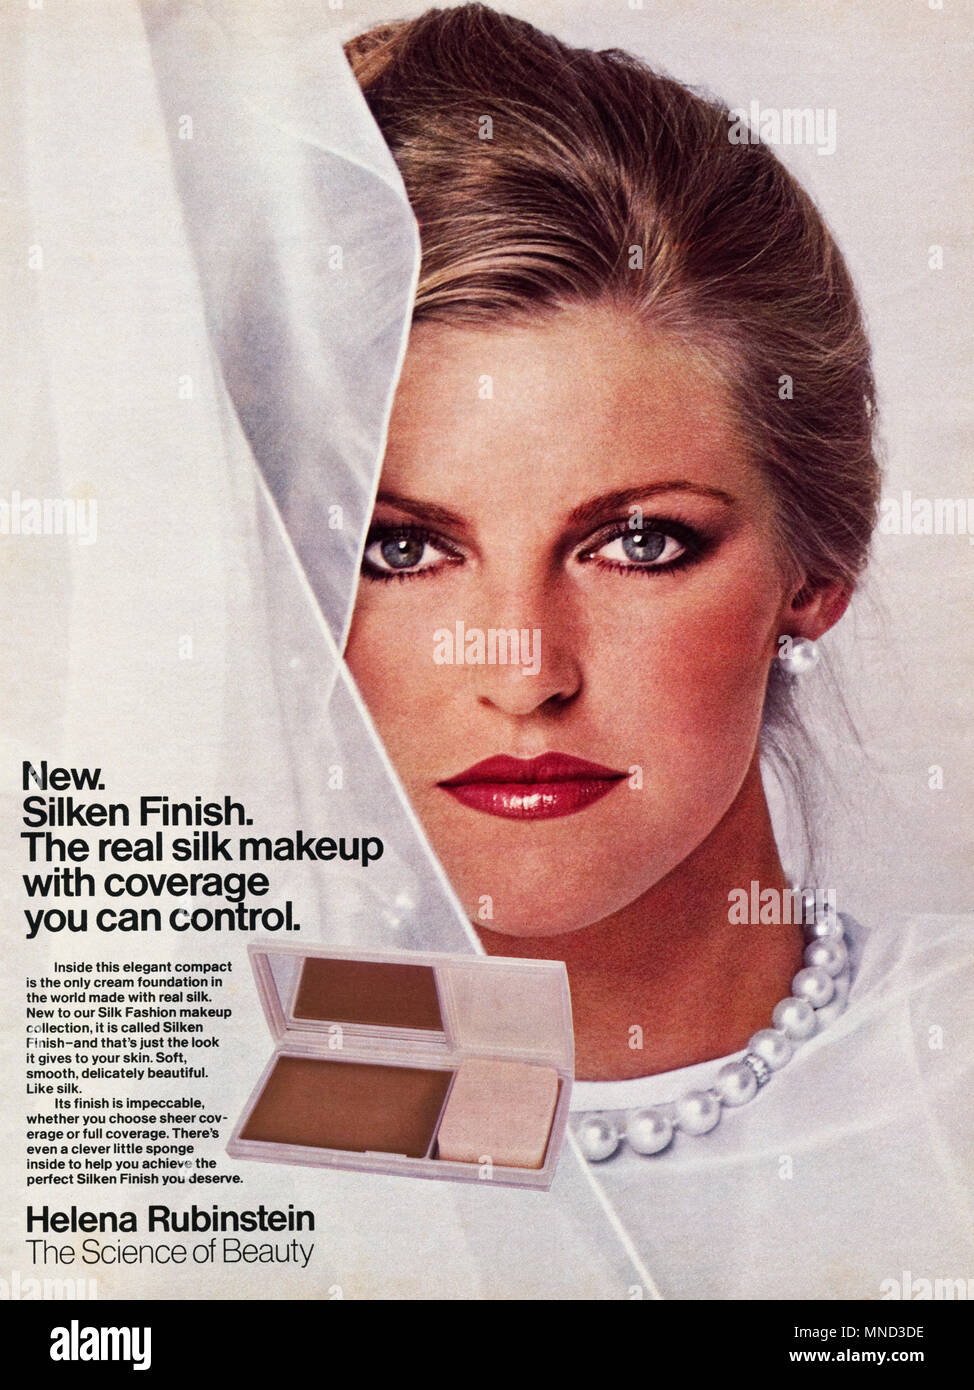 1980s original old vintage advertisement advertising foundation cream with real silk by Helena Rubinstein for women advert in English magazine circa 1980 - Stock Image